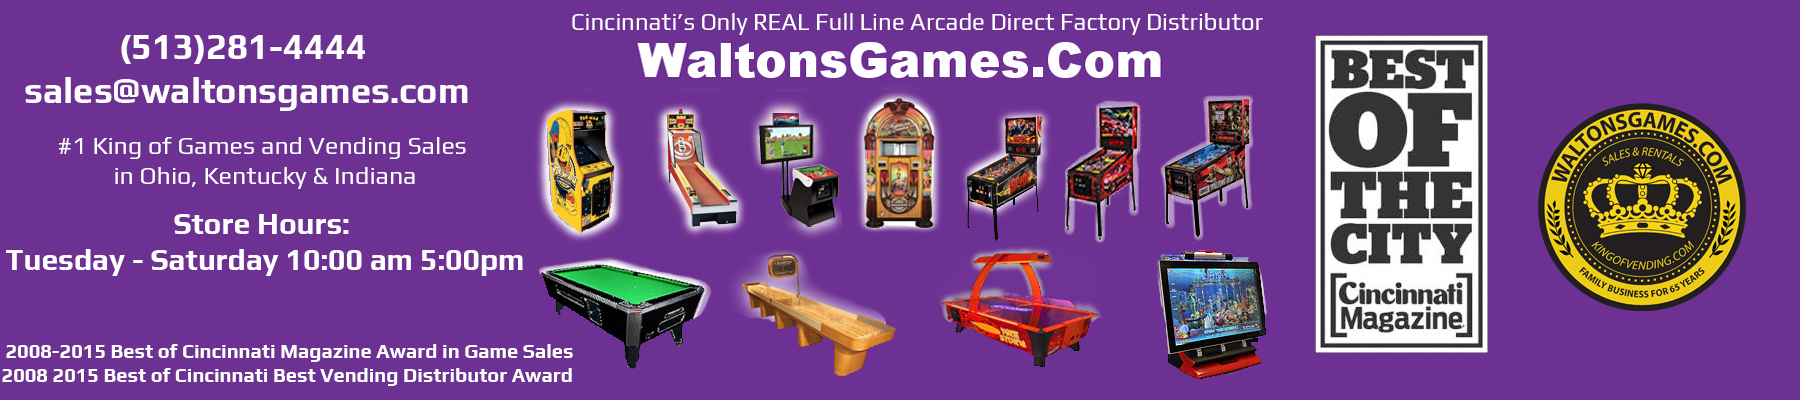 Welcome to WaltonsGames.Com